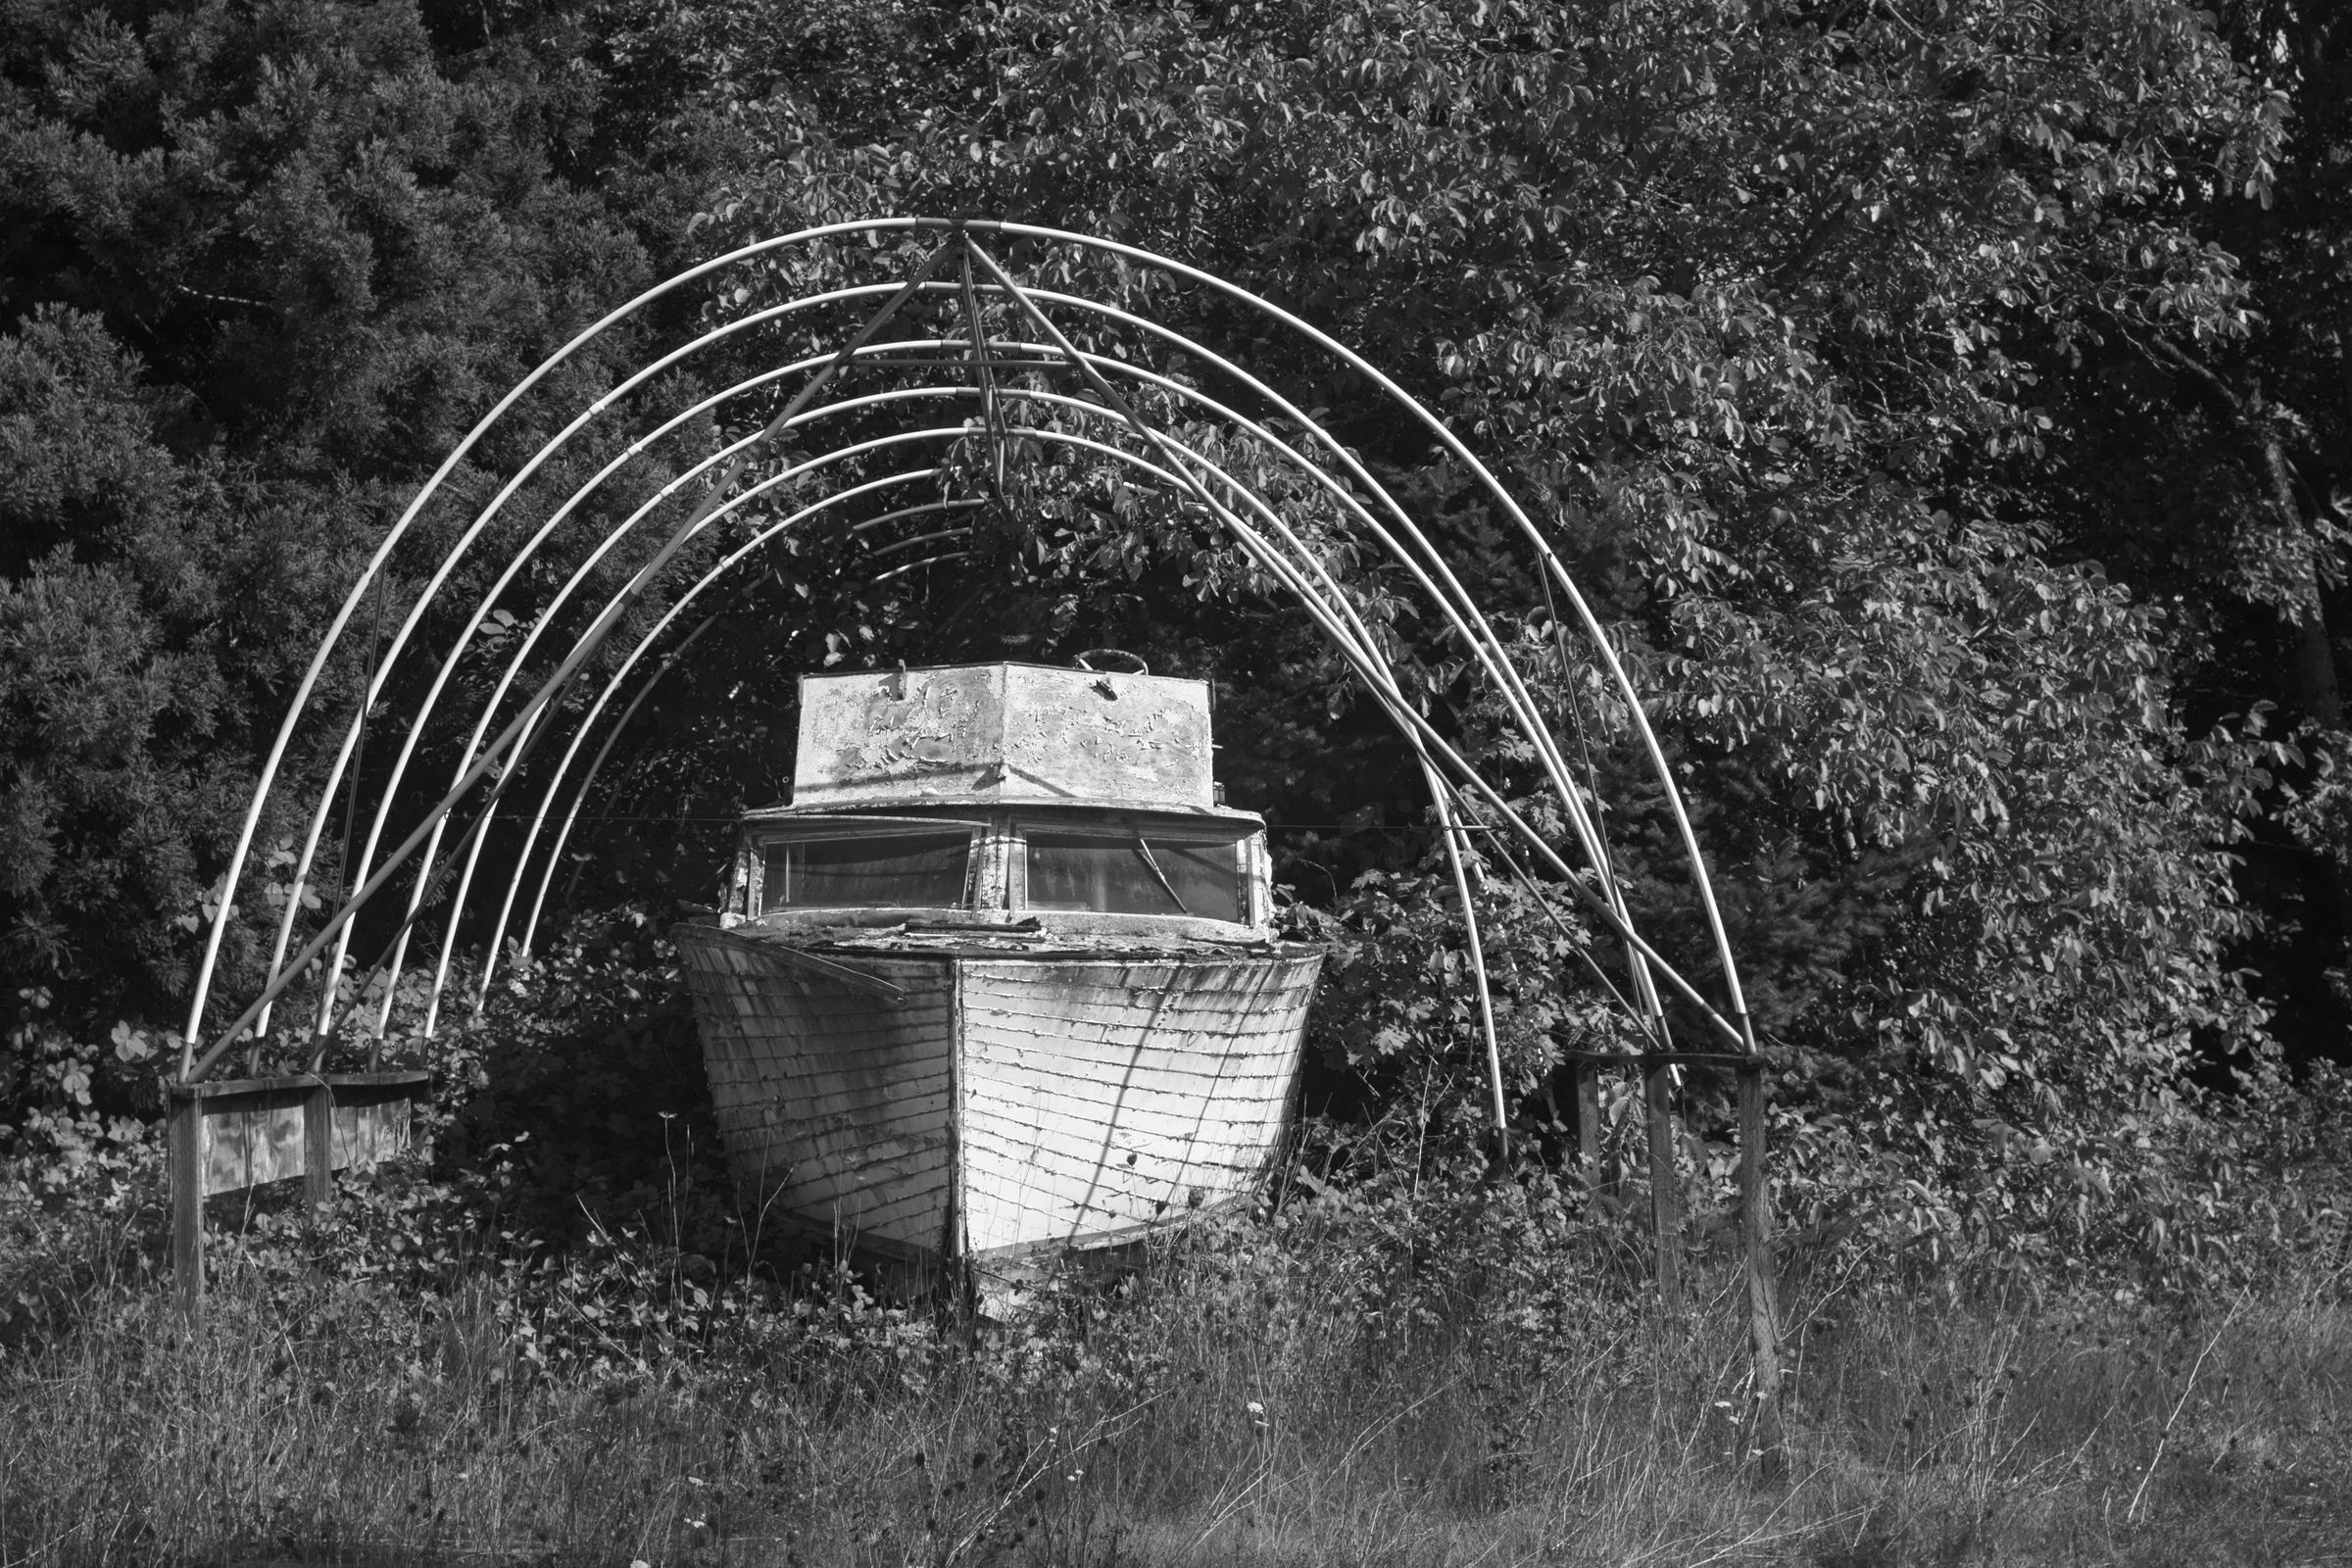 Boat in Ribs, Oregon